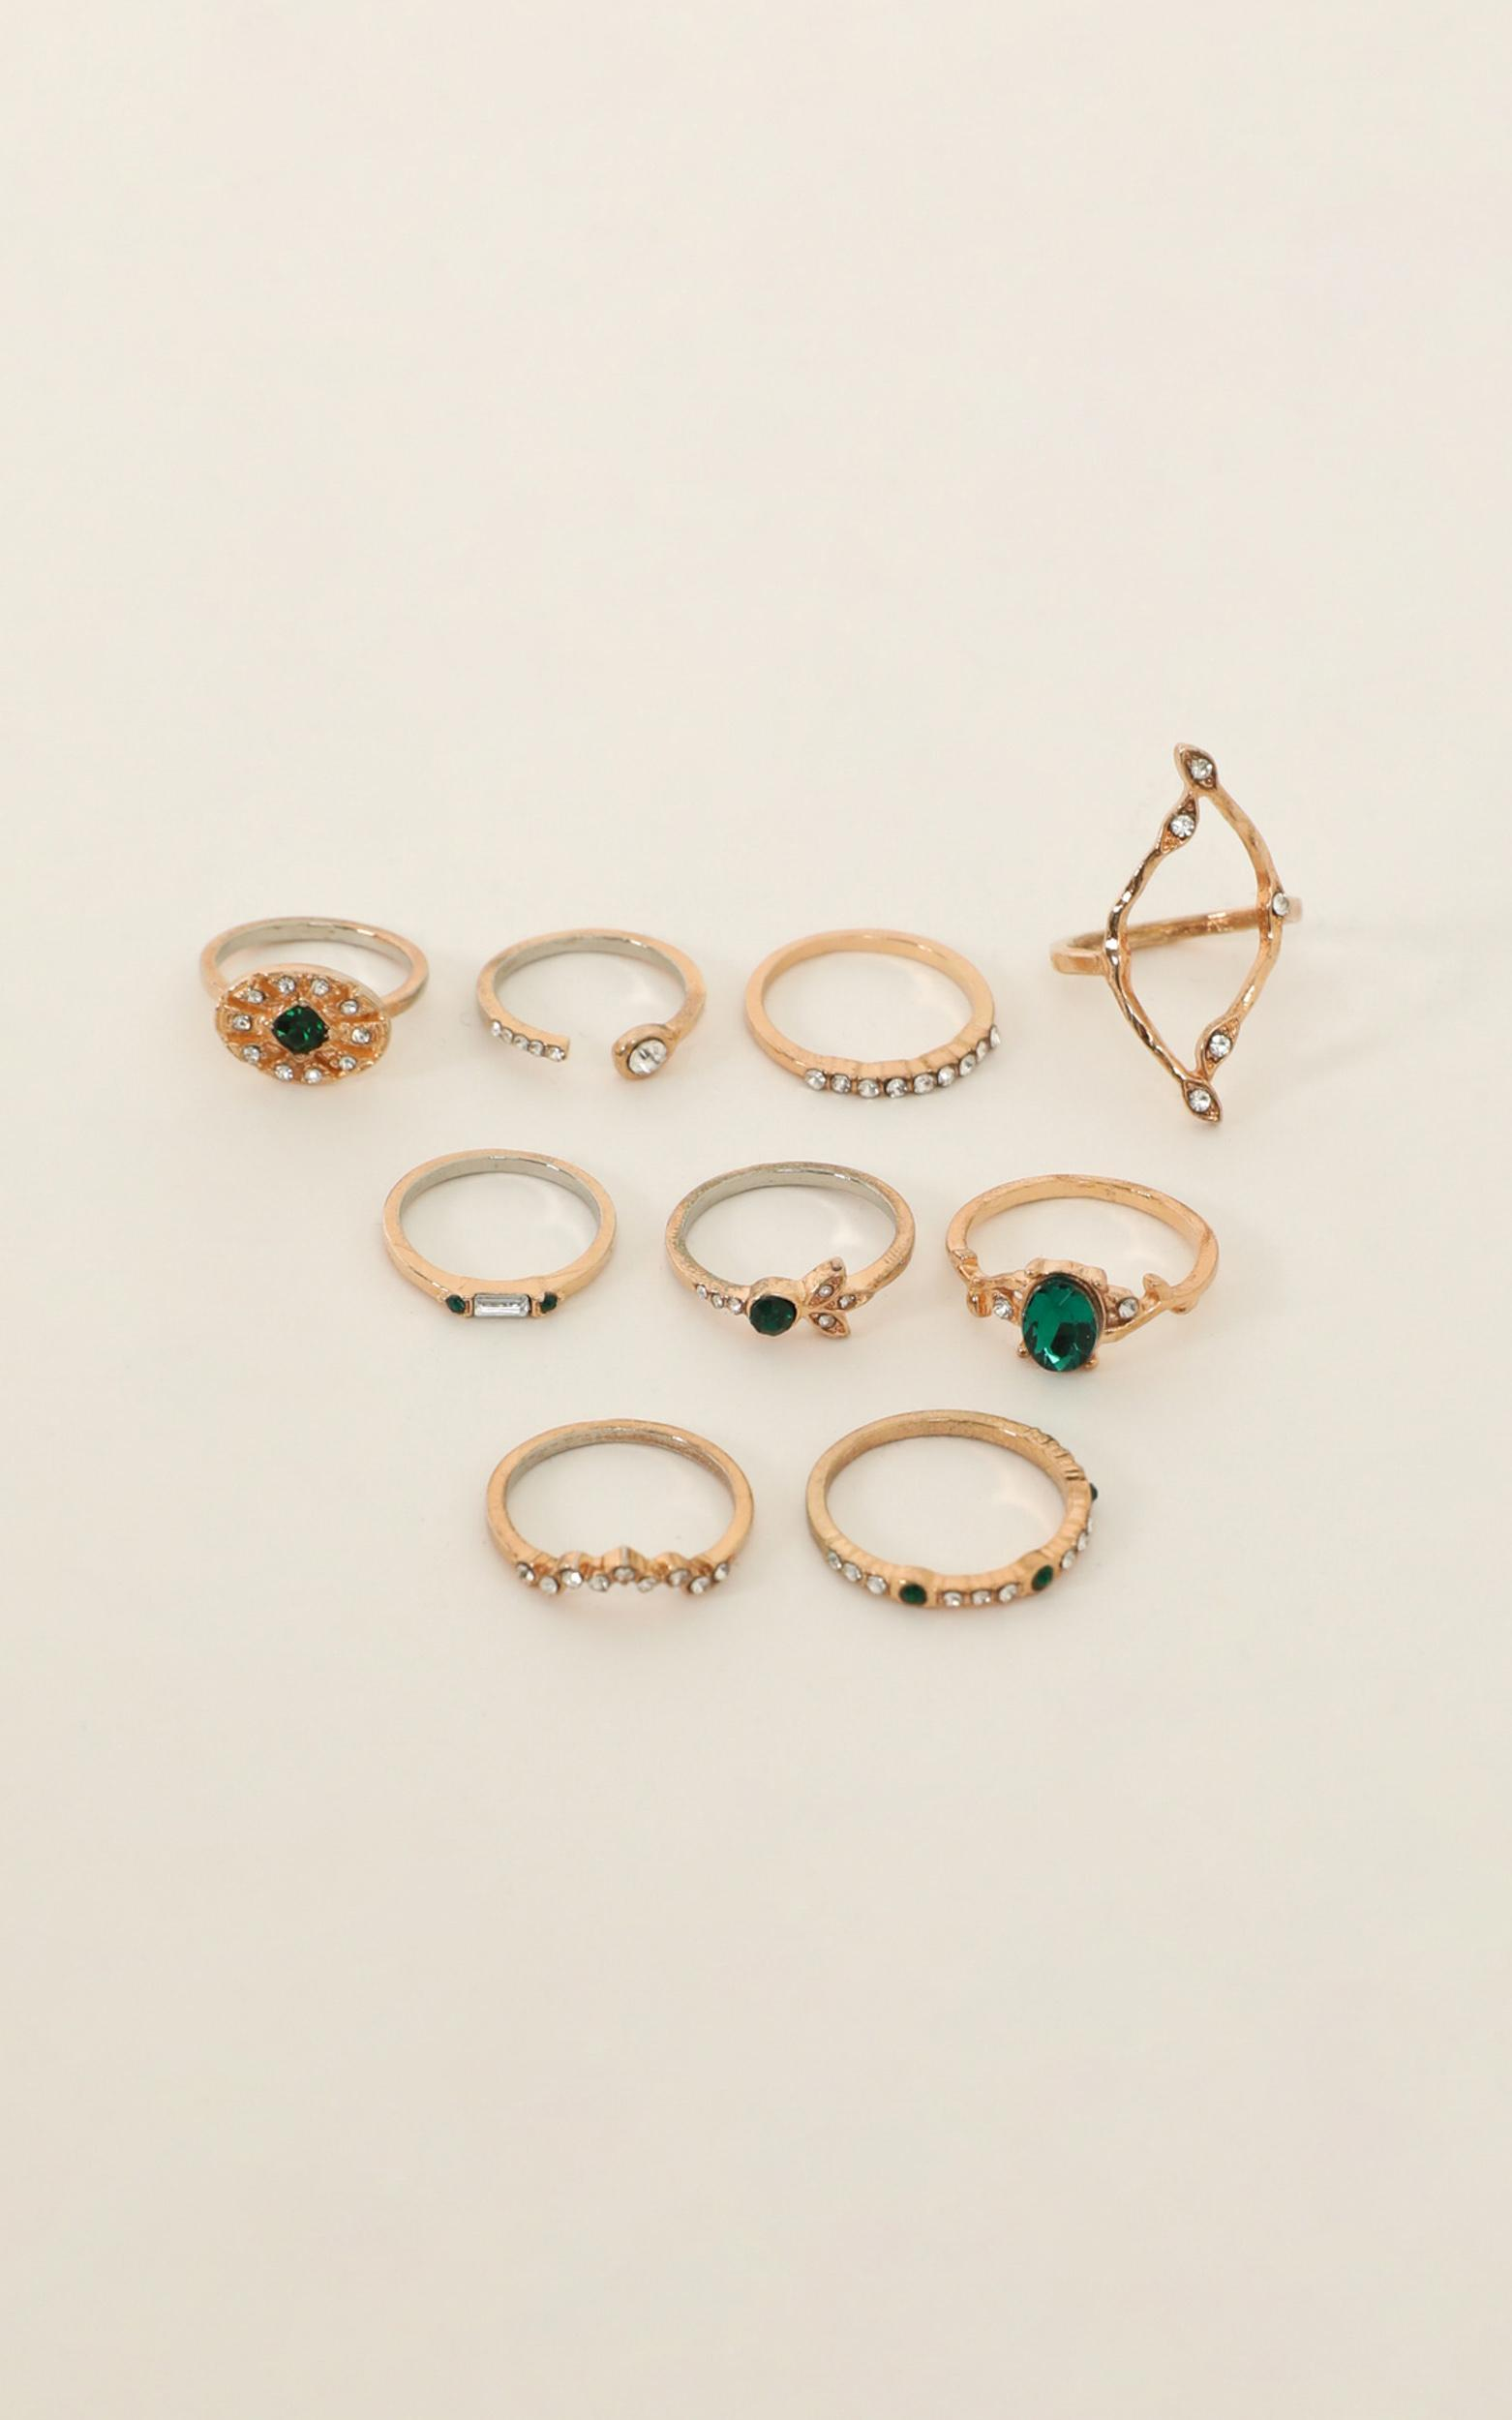 Waiting On The World Ring Set In Gold And Emerald, , hi-res image number null